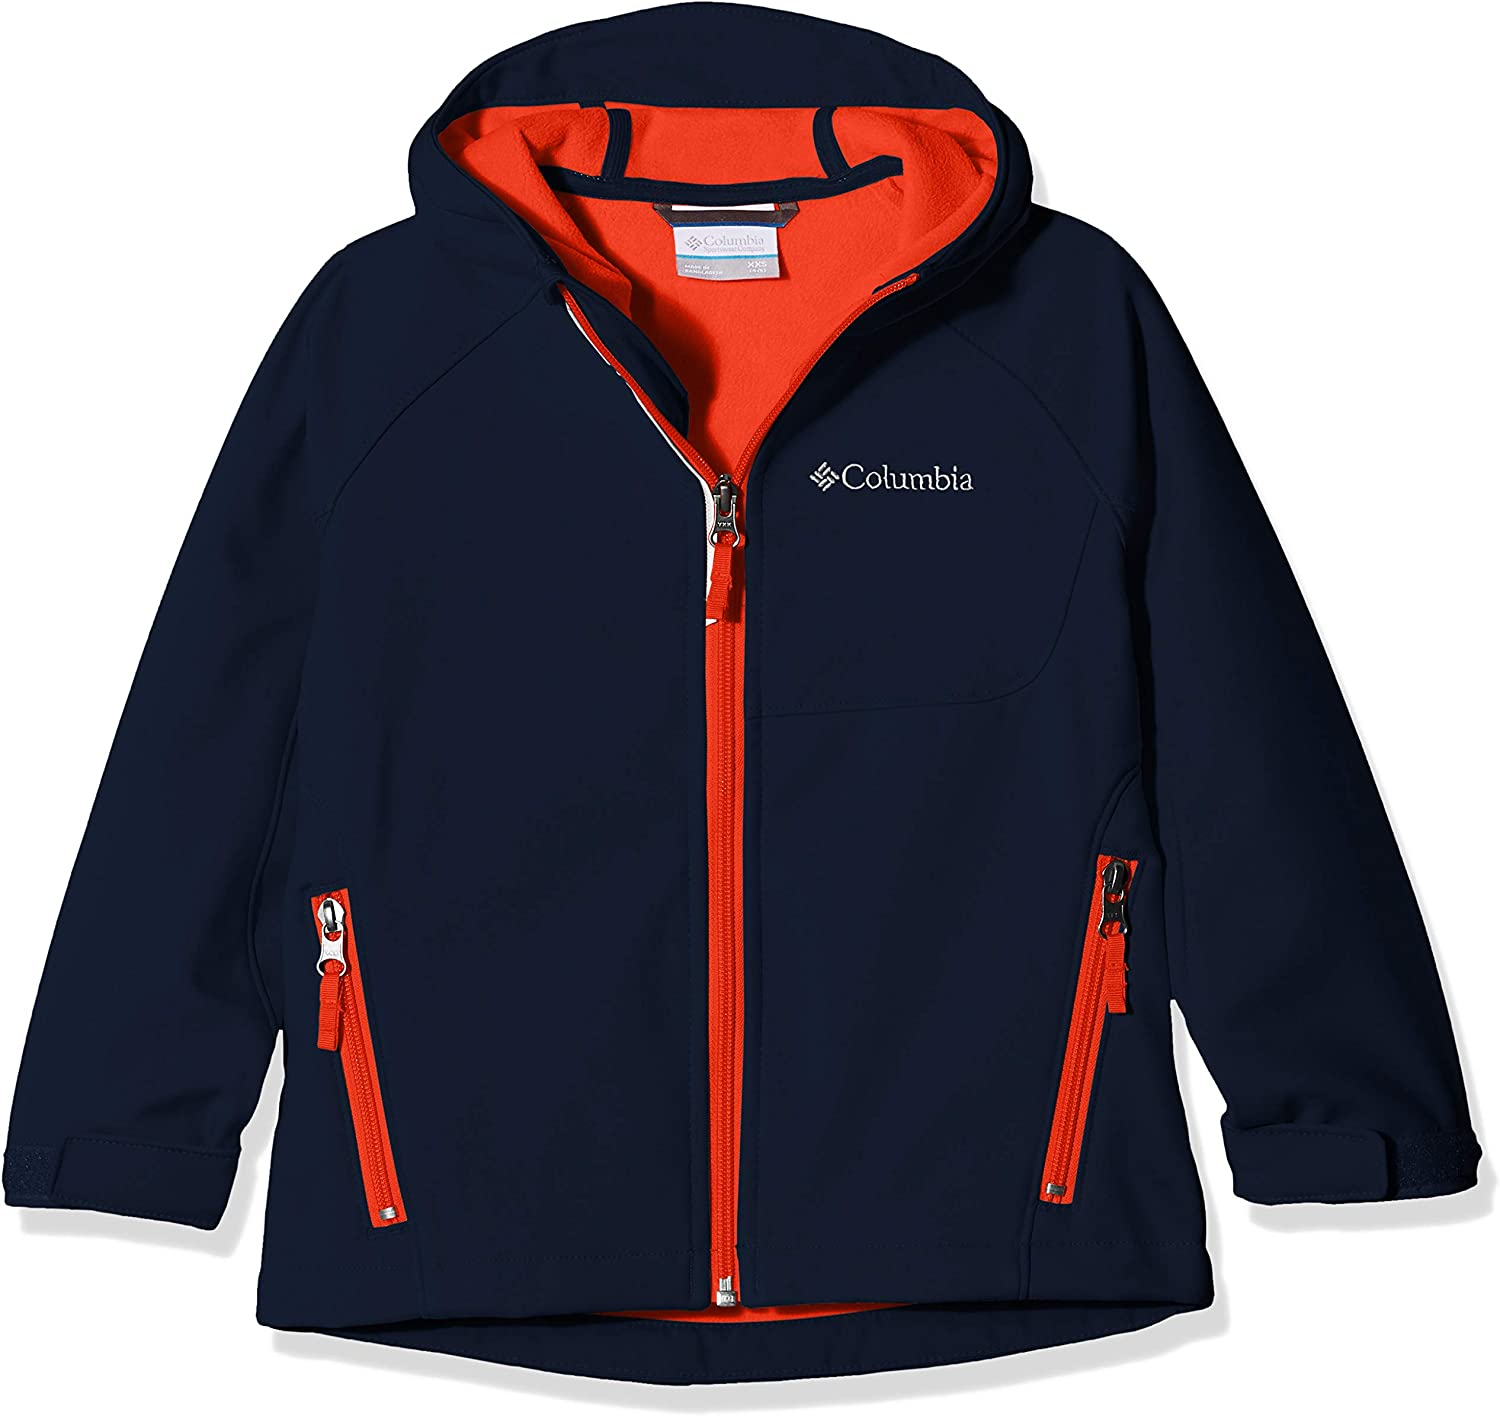 XS Nocturnal Heather Ni/ñas Azul Columbia Nordic Strider Chaqueta De Invierno